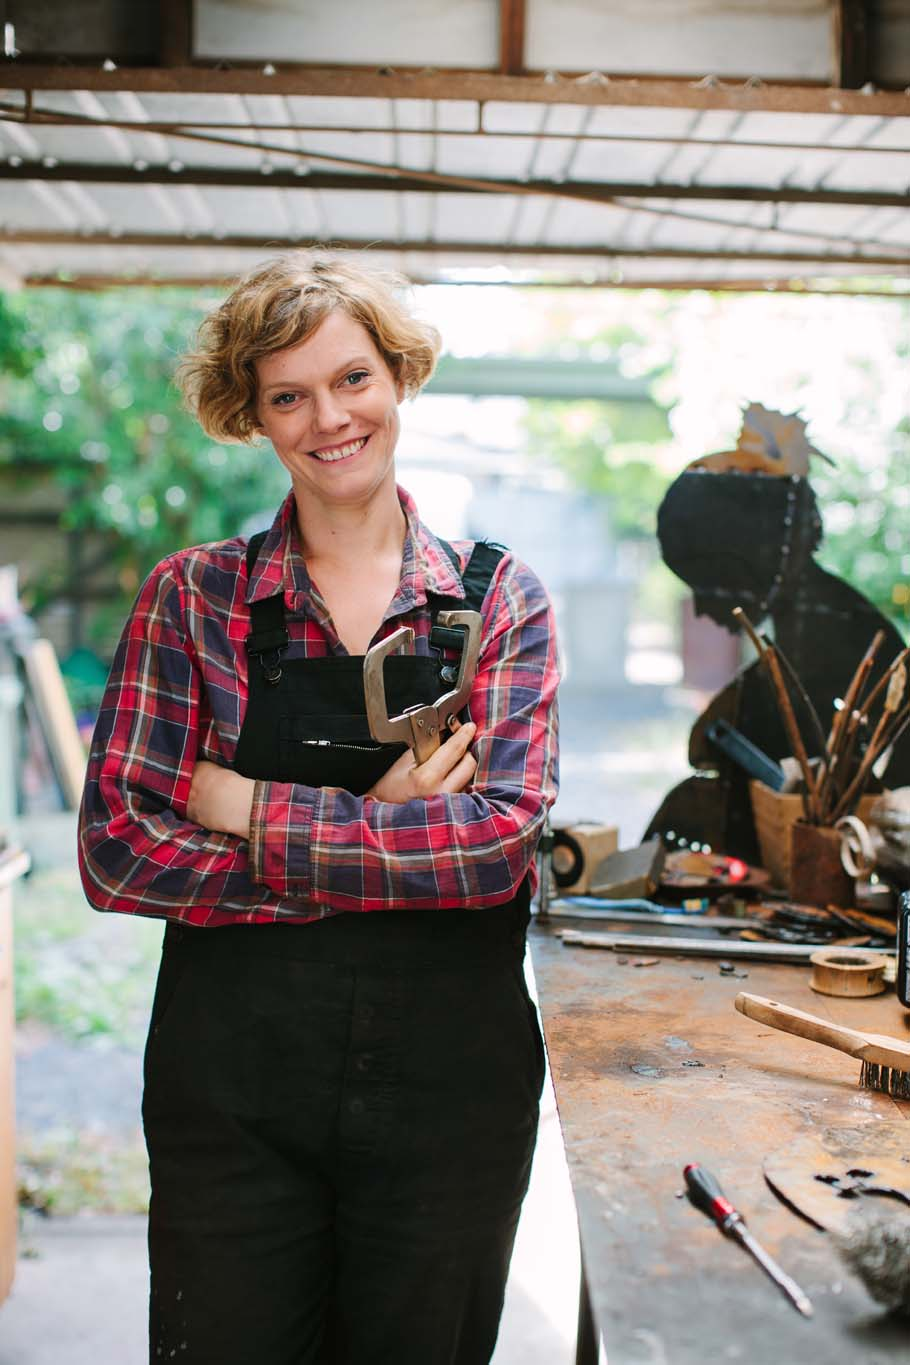 Professional business photo of woman in workshop